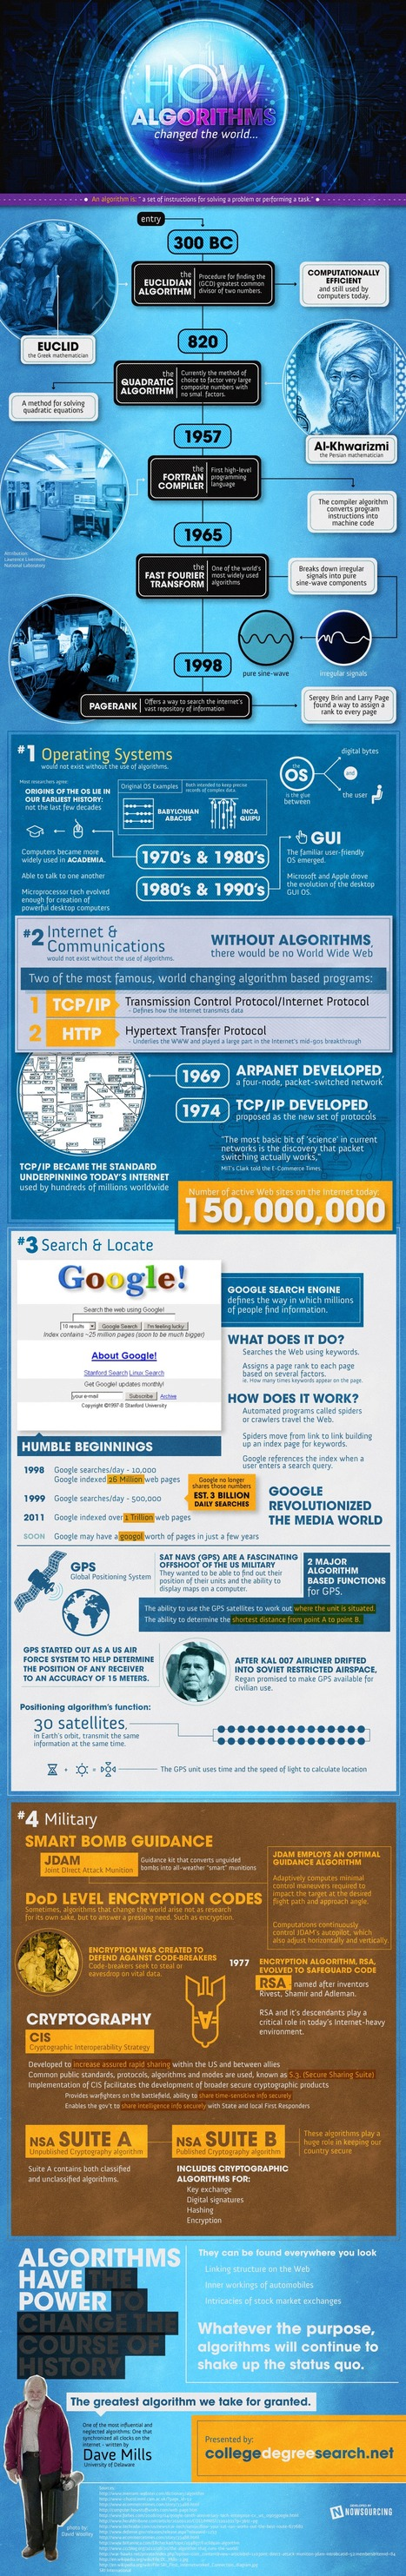 How #Algorithms Change The World As We Know It [Infographic] | e-Xploration | Scoop.it